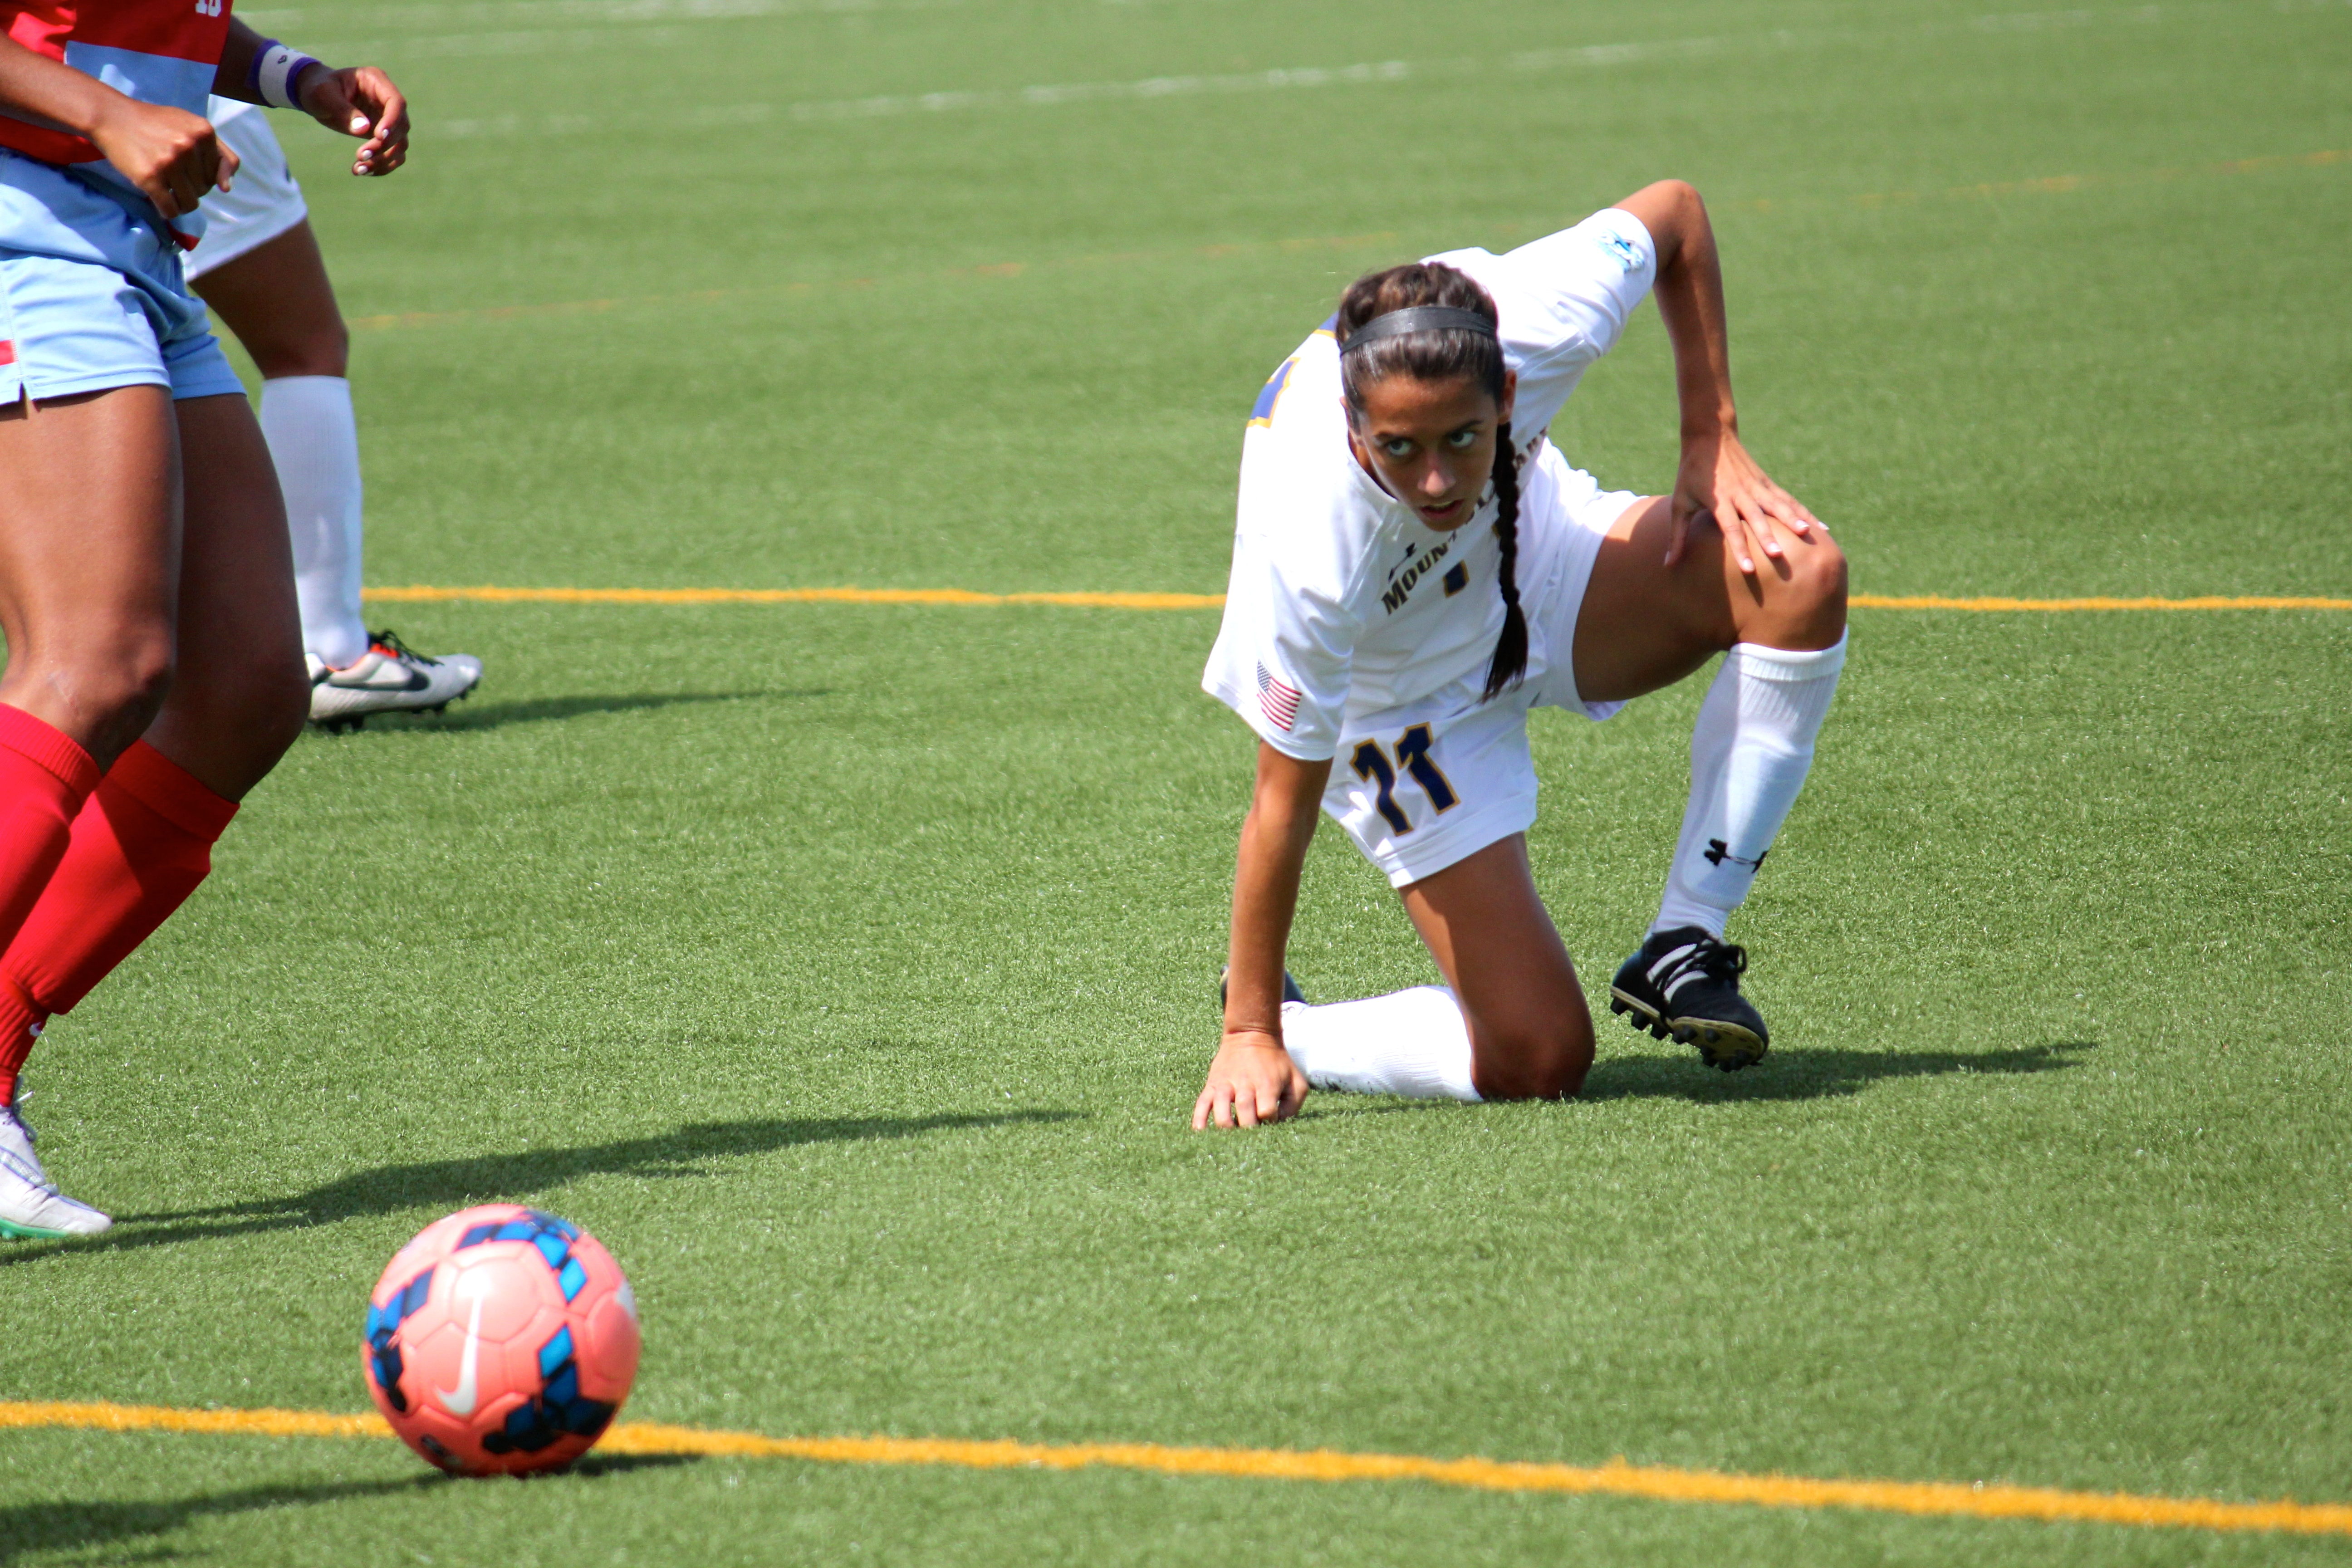 Picture of a Mount soccer player.